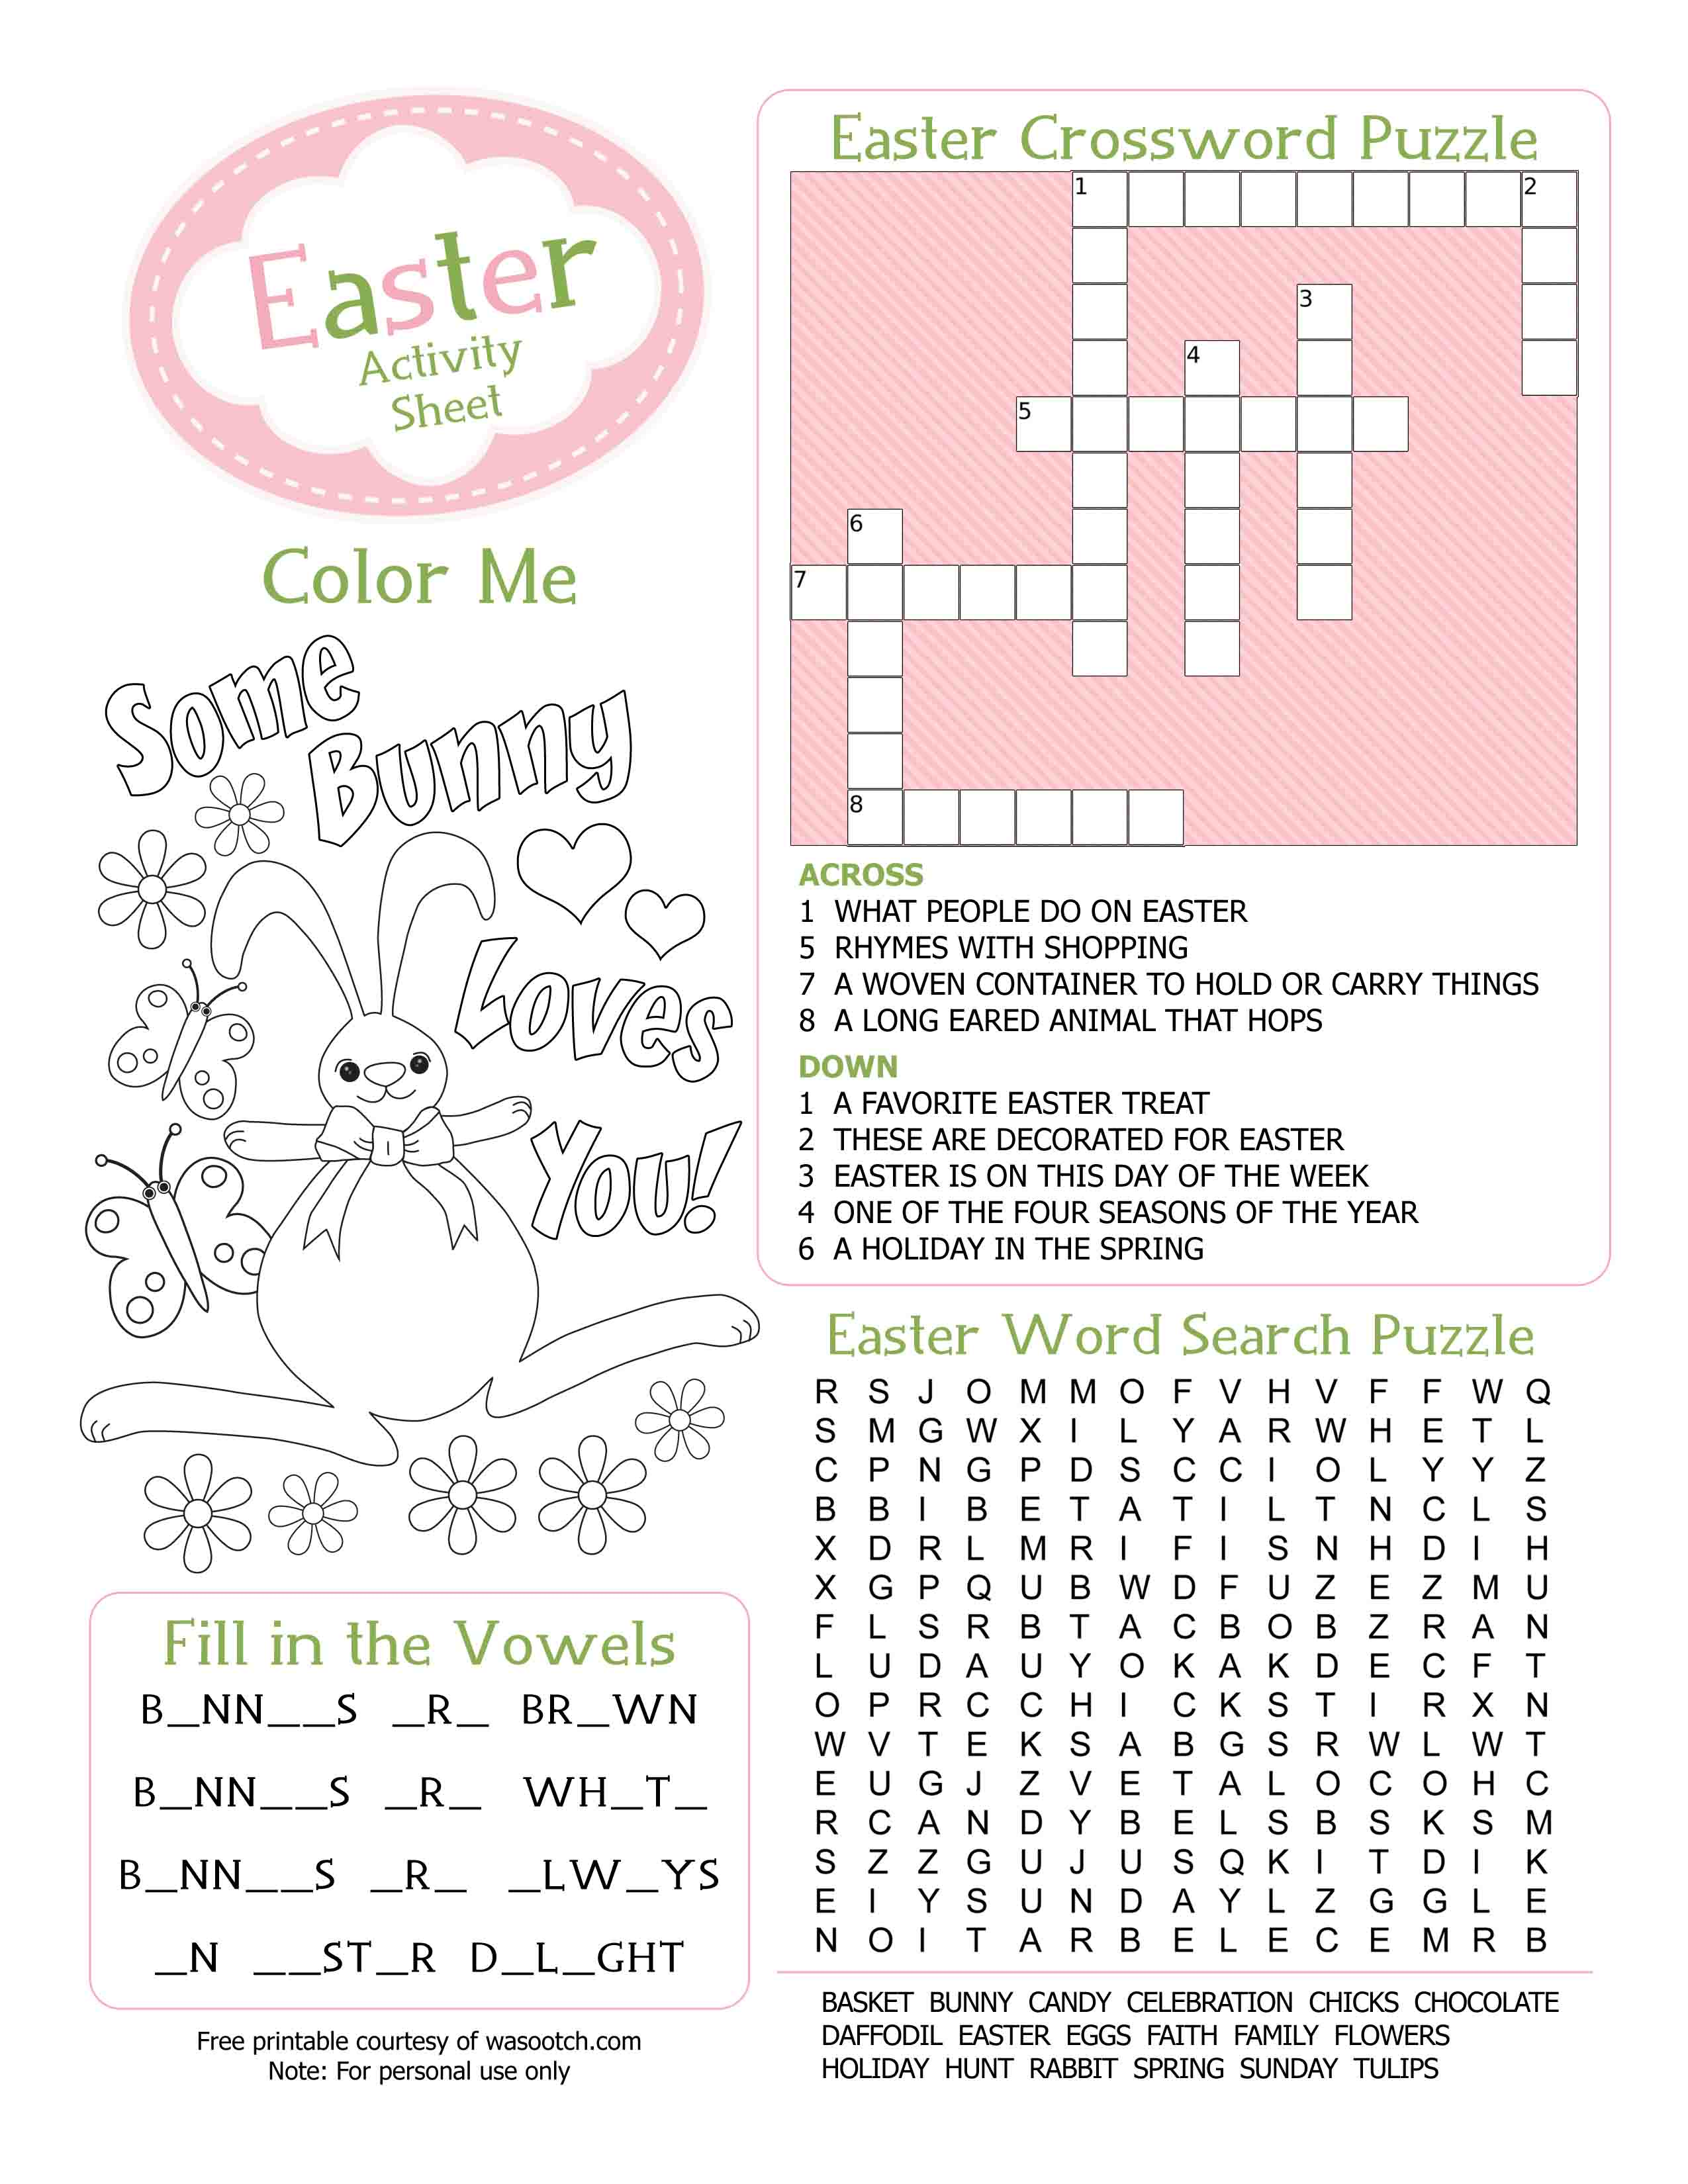 This Easter kids activity sheet is free for you to use for PERSONAL VaDFndNx